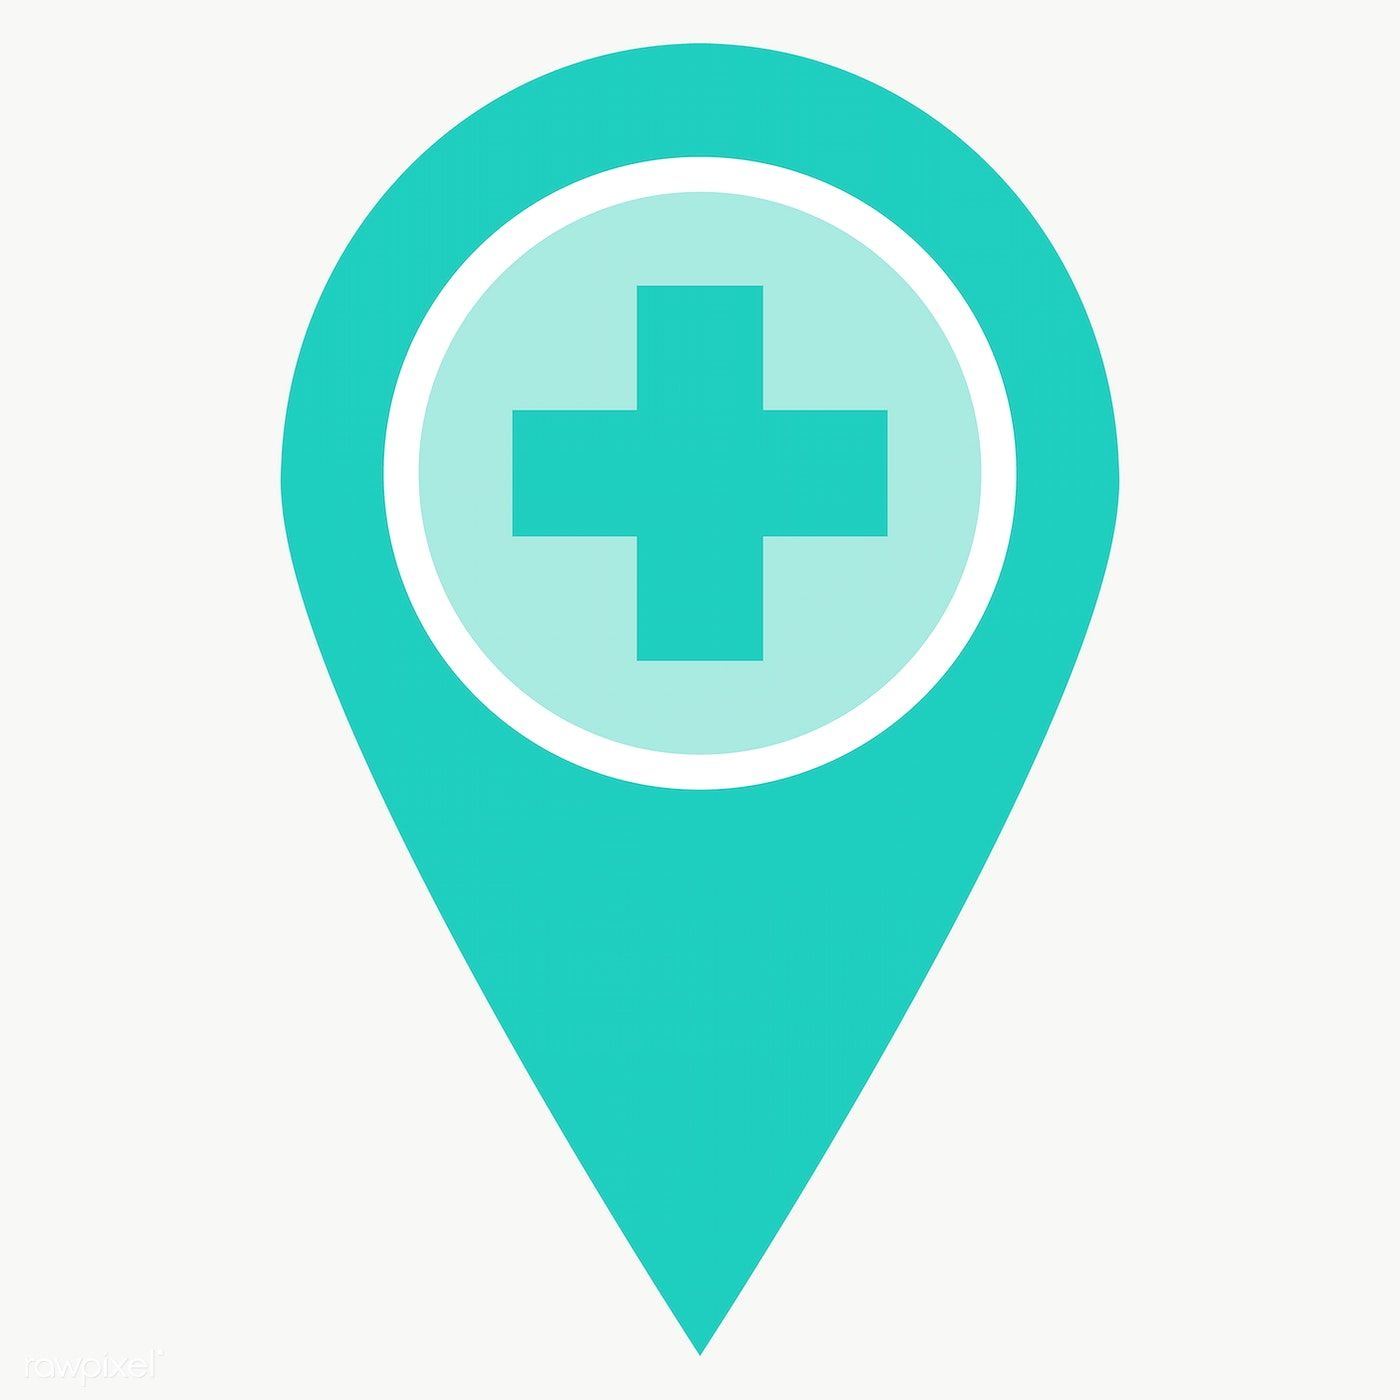 Green Medical Location Pin Element Transparent Png Free Image By Rawpixel Com Manotang Hospital Icon Png Medical Icon